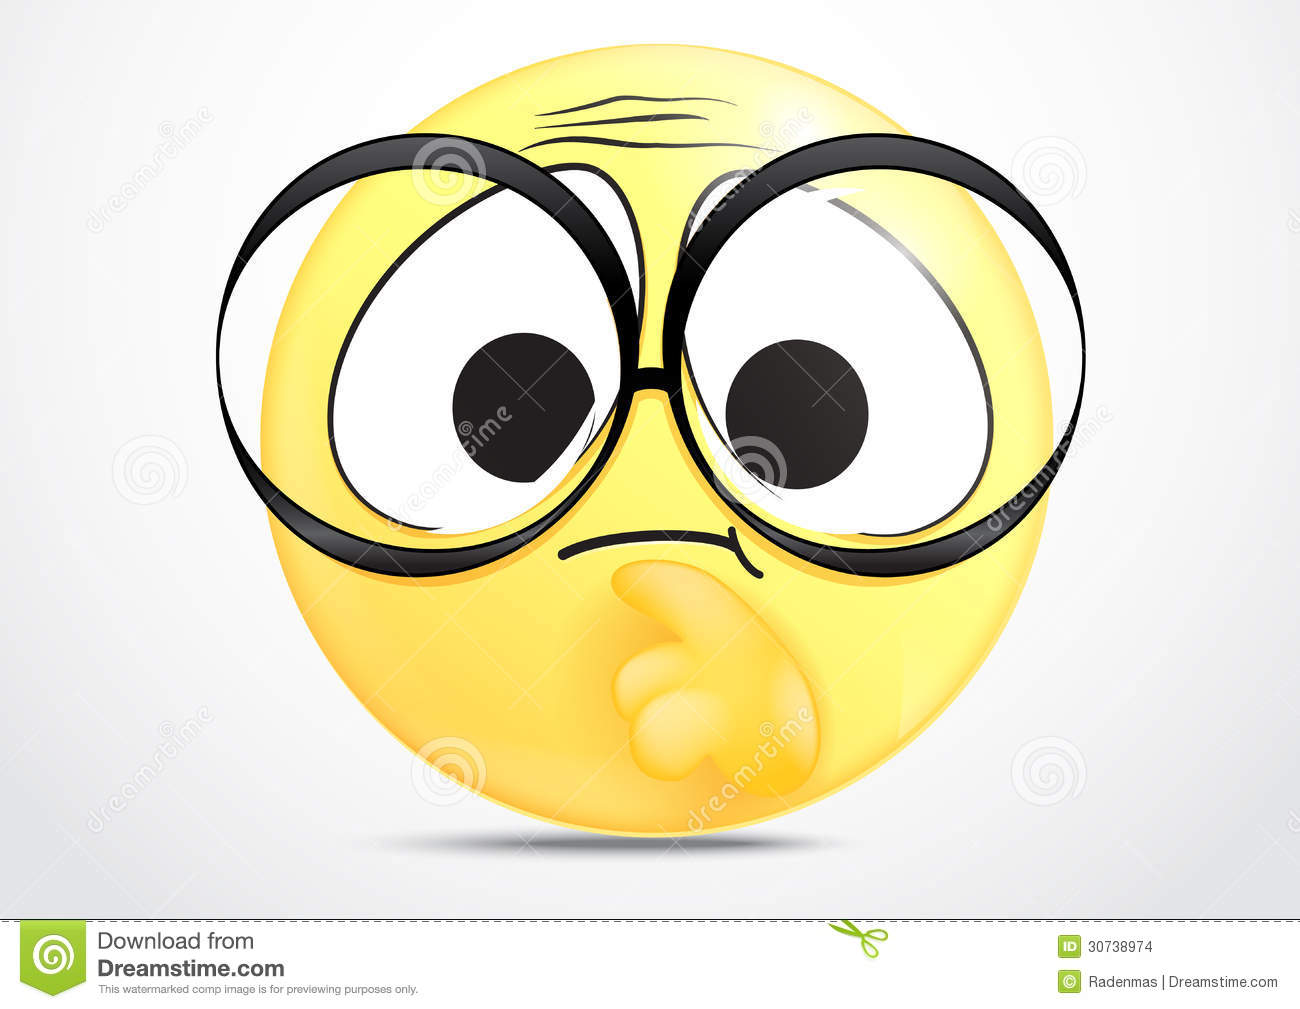 Illustration of thinking emoticon with glasses on white.